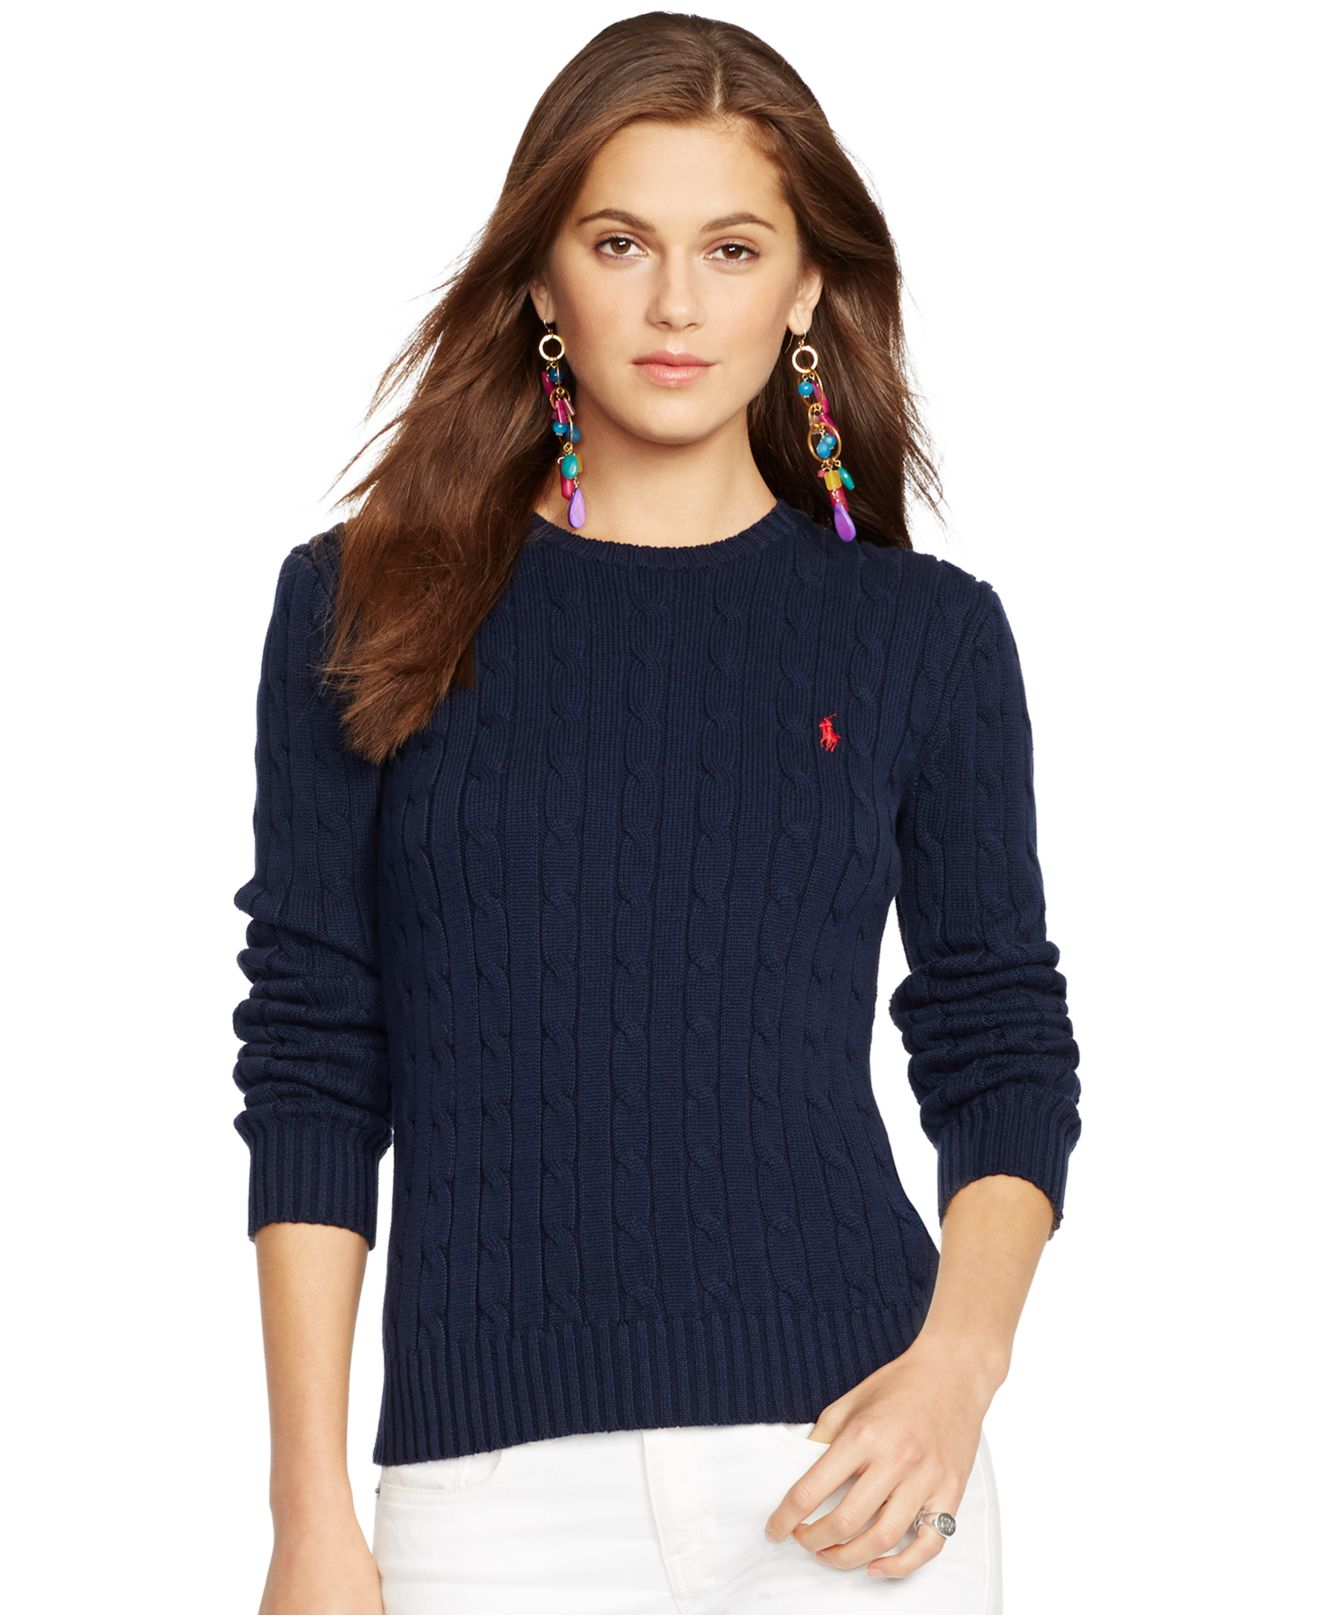 Polo ralph lauren Crew-Neck Cable-Knit Sweater in Blue | Lyst